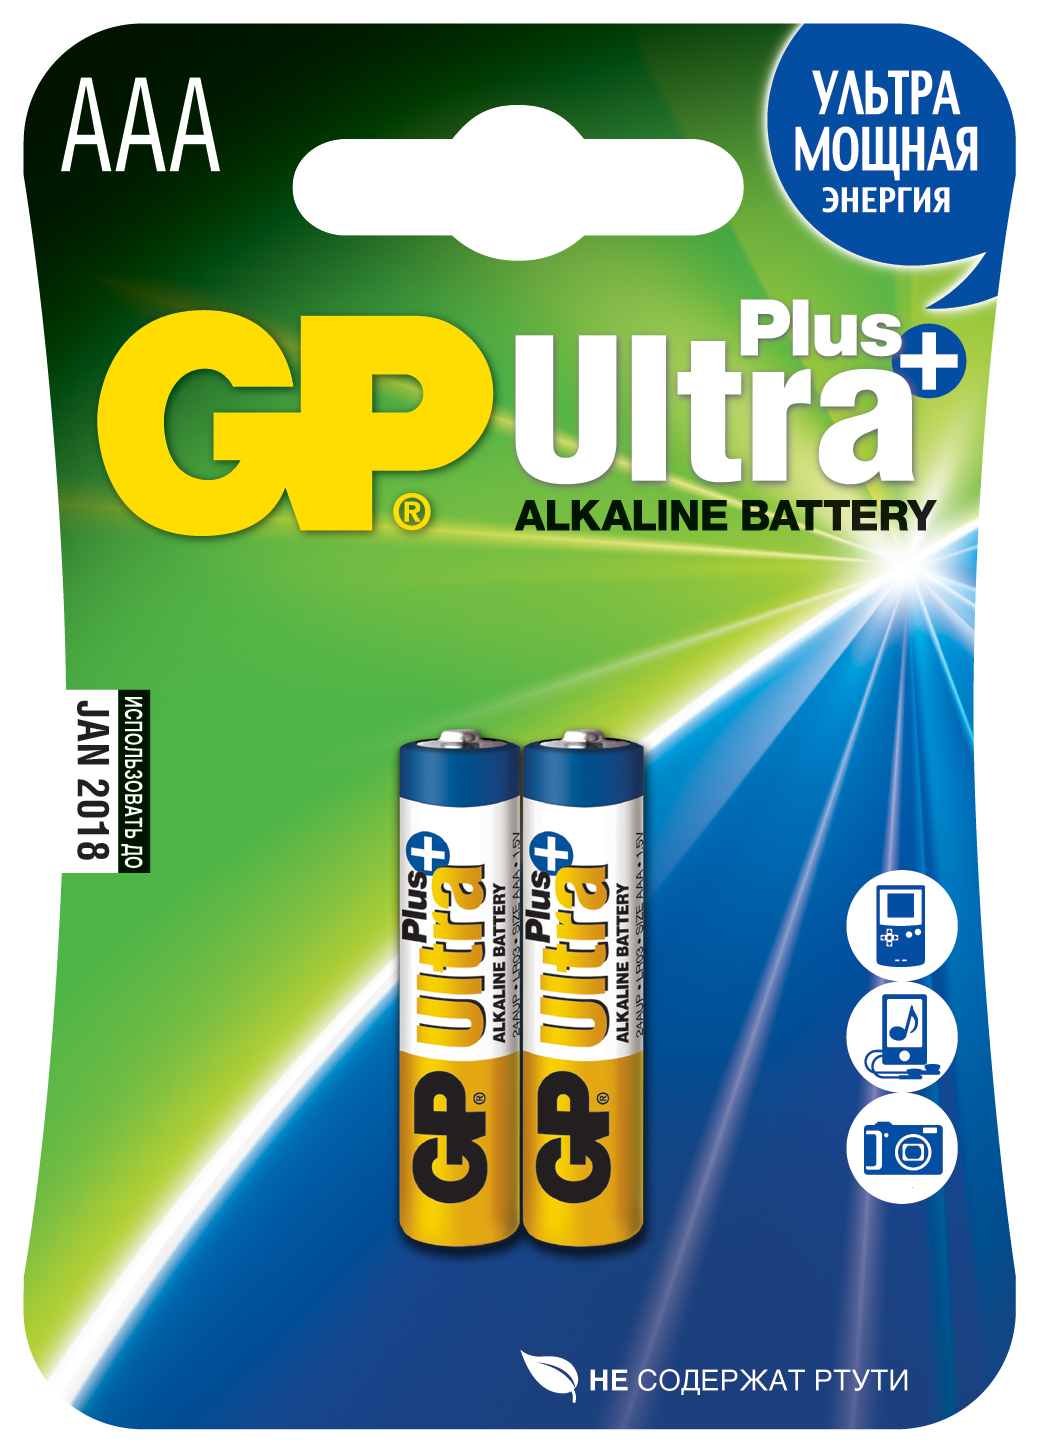 Батарейки алкалиновые gp ultraplus lr03 (ааа) 1,5в №2